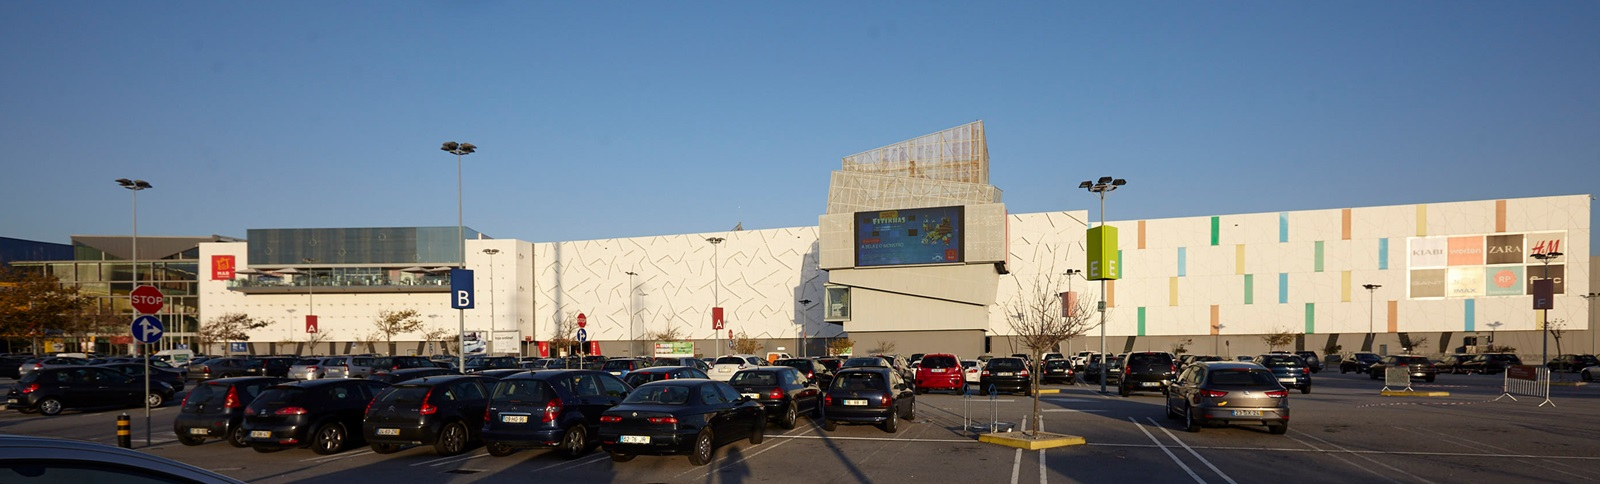 Acerca Do Centro Mar Shopping Matosinhos Sobre